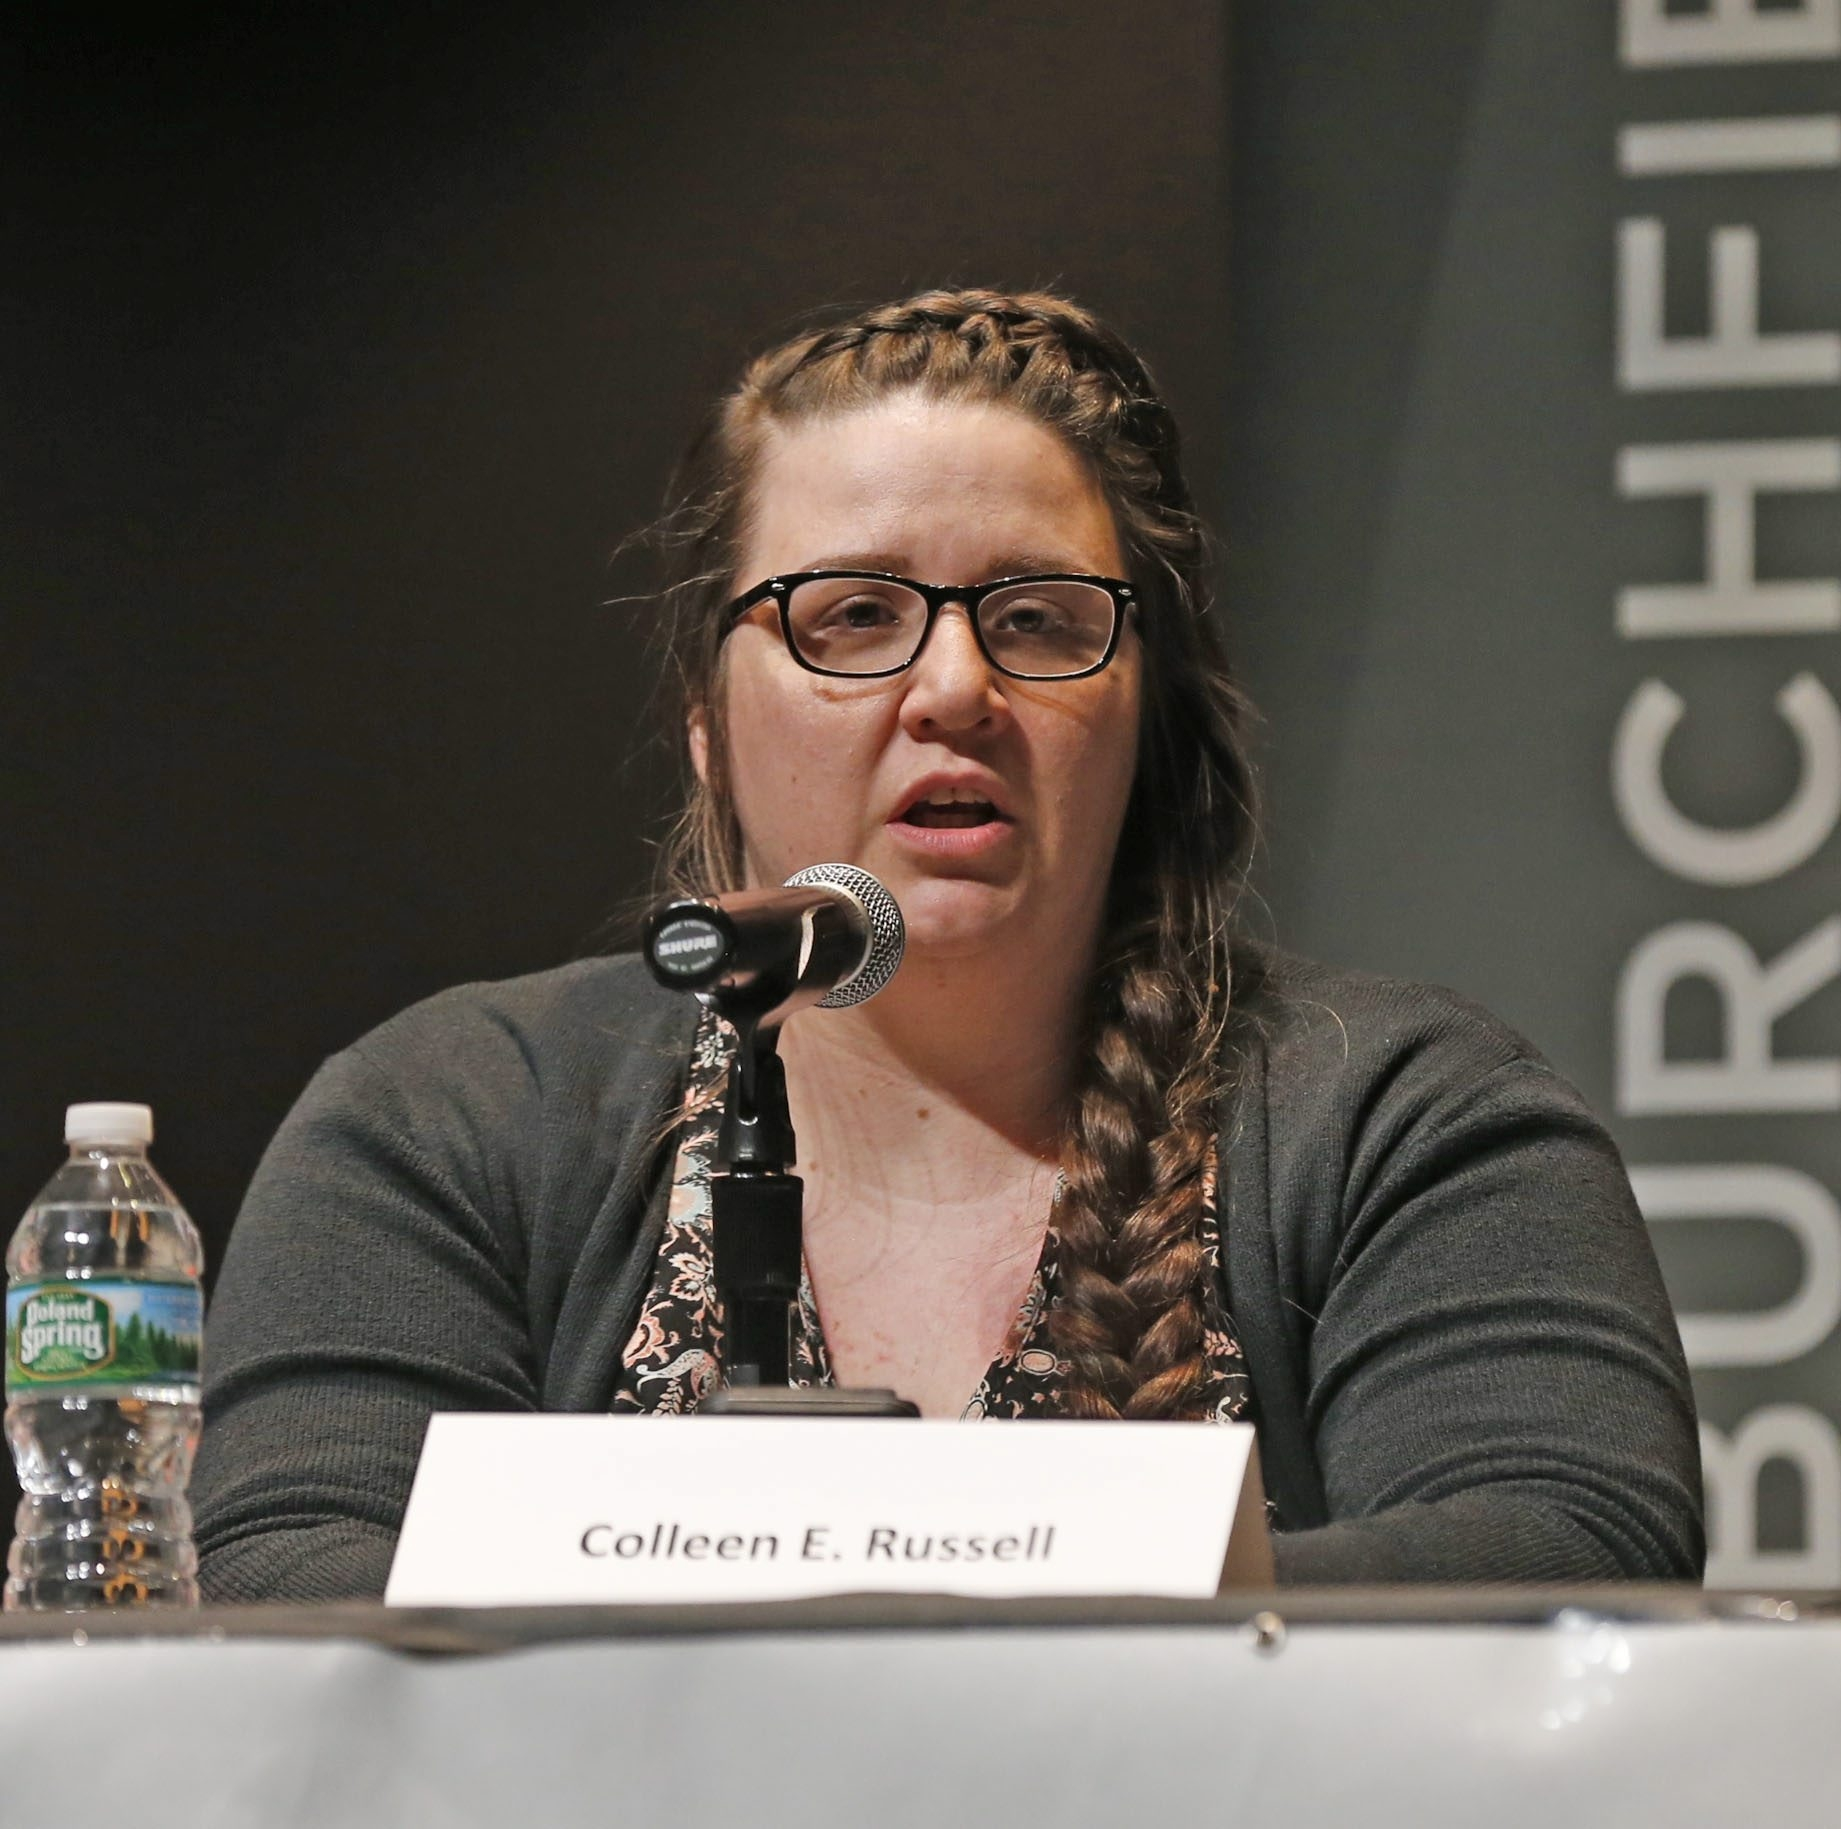 Colleen E. Russell, speaking at a forum for Buffalo School Board candidates, has been knocked off the May 3 ballot.  (Robert Kirkham/Buffalo News)